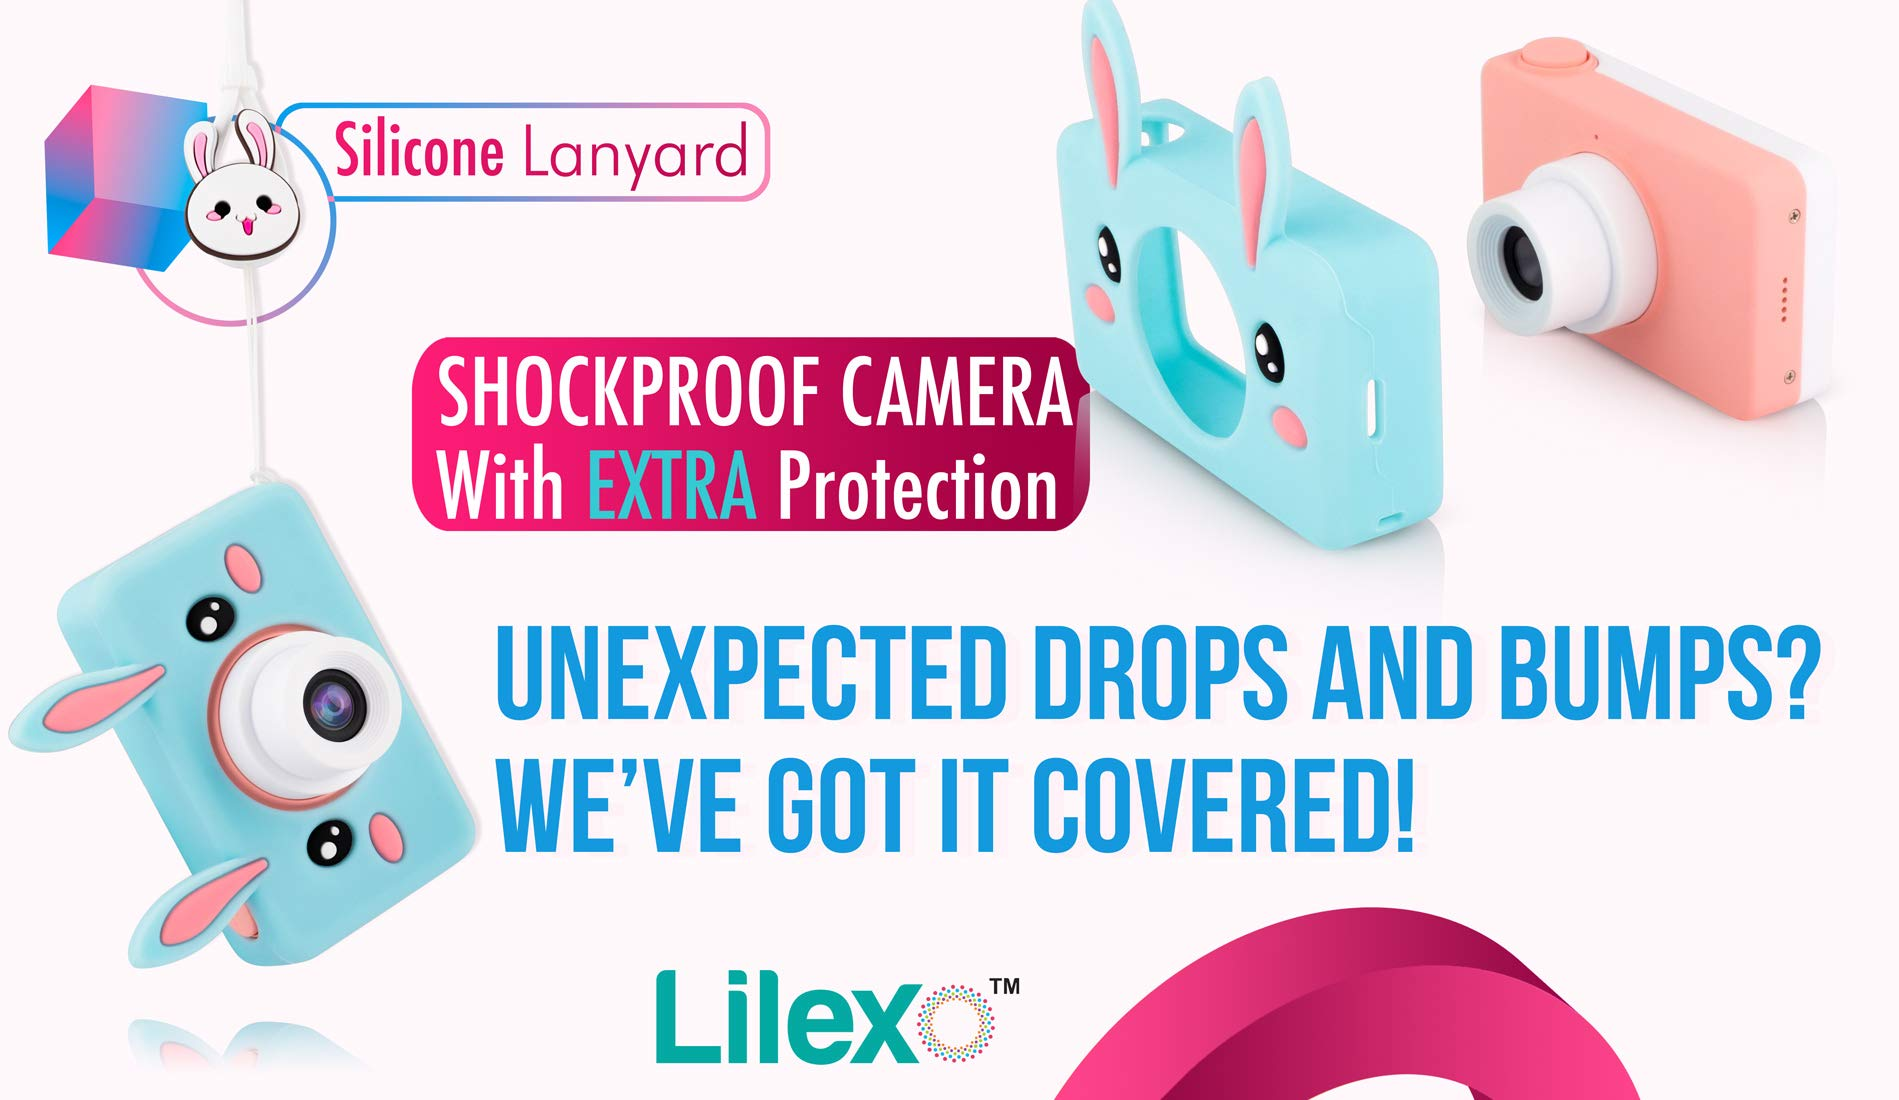 Lilexo Kids Camera - Children Shockproof Mini Digital Video Camcorder for Girls Gifts, Anti Slip Grip with Animal Silicone Cover for Extra Protection - 16GB Memory Card Included (Blue Rabbit) by Lilexo (Image #5)